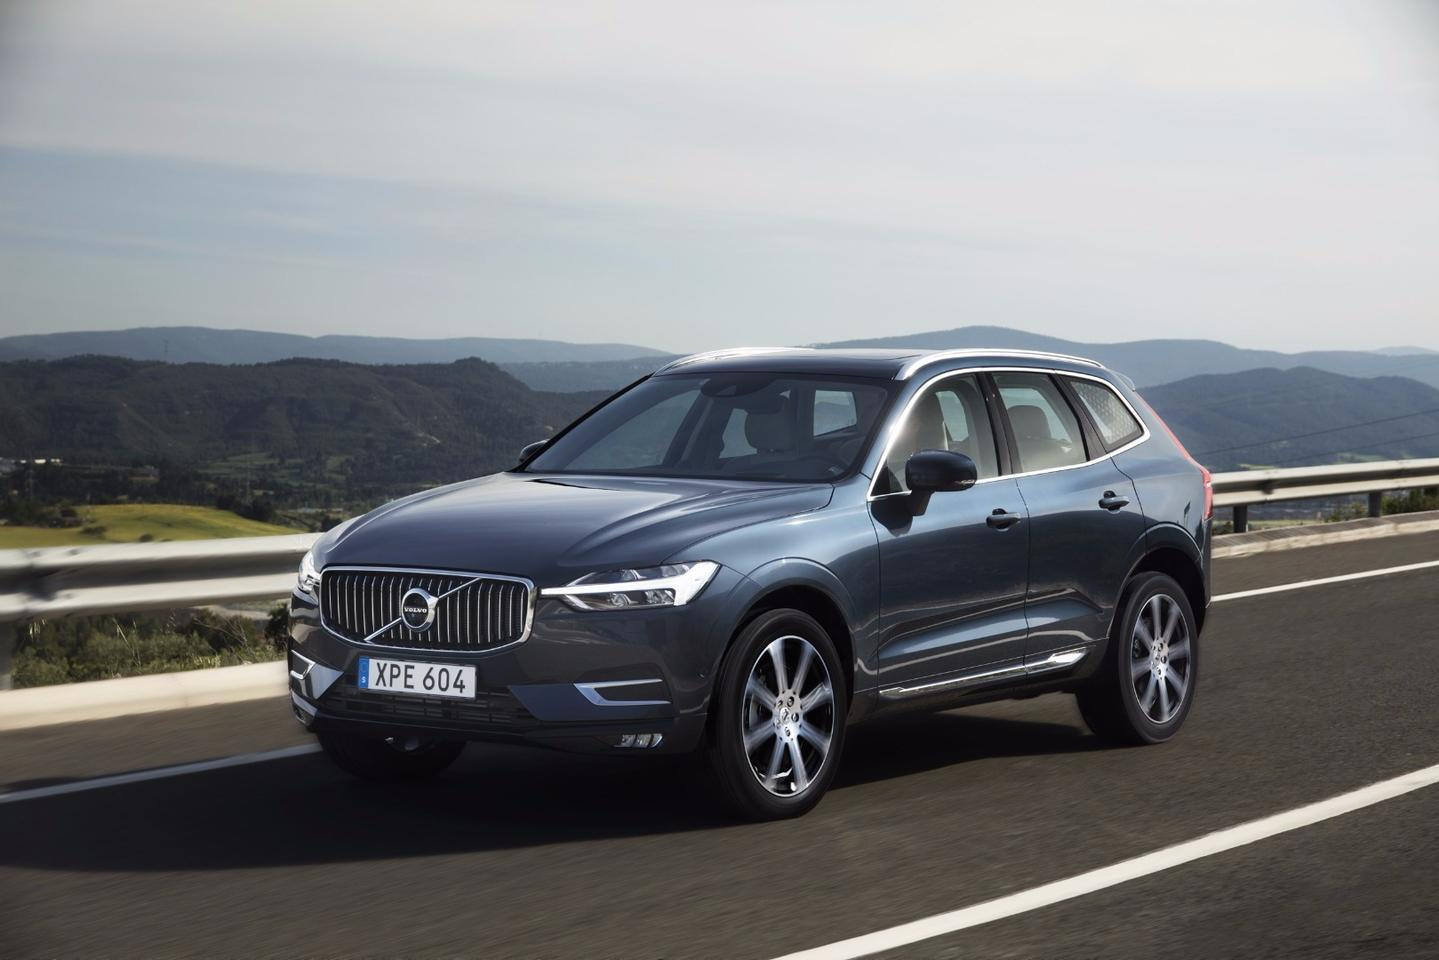 The new Volvo XC60 was used as a camera by Barbara Davidson